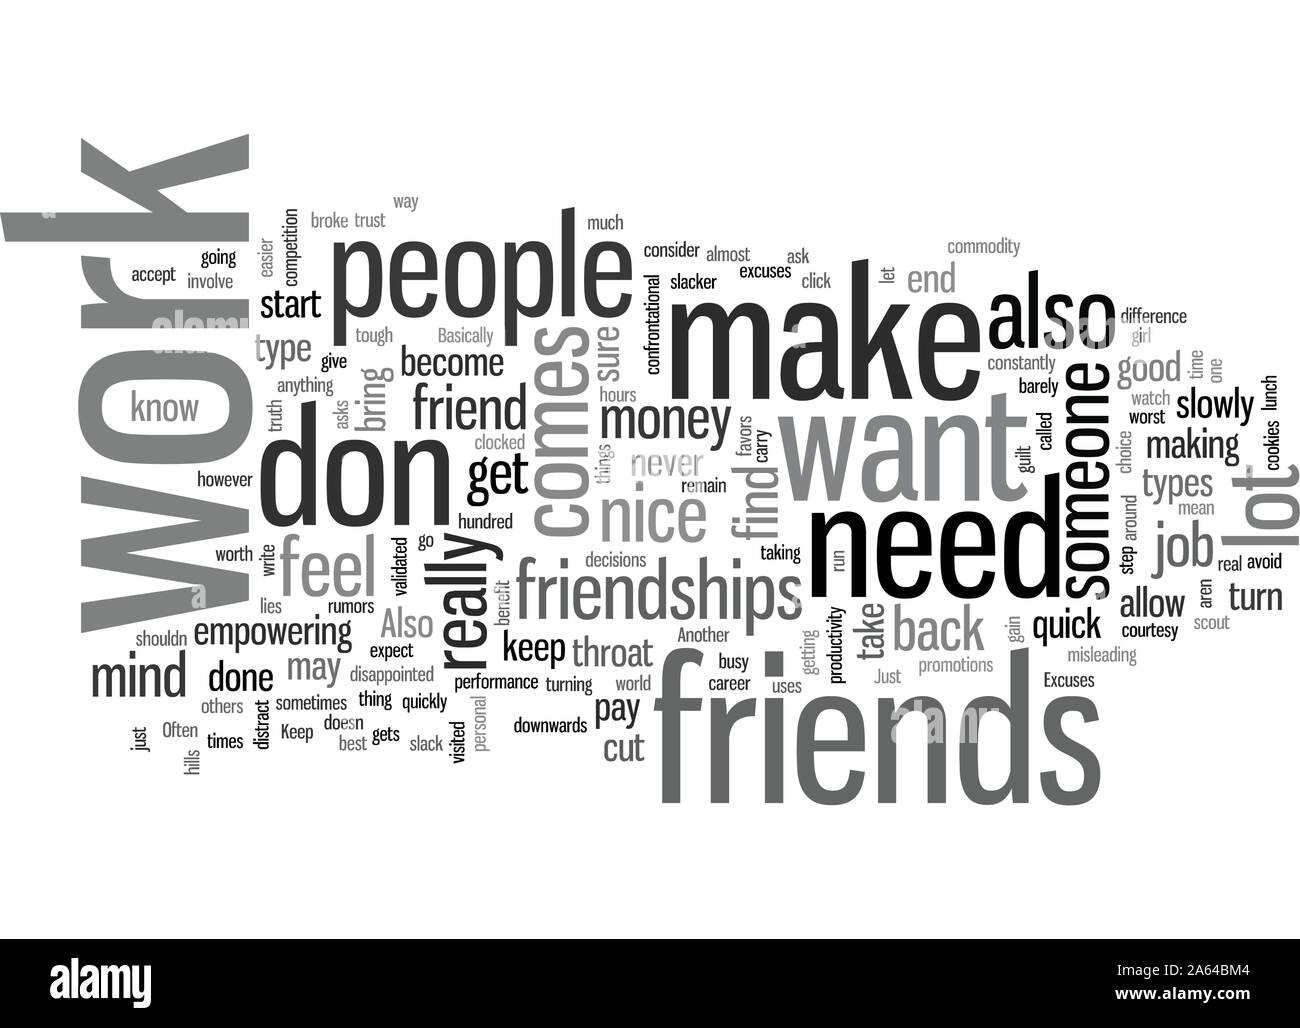 How to make a choice of friends while at work Stock Vector